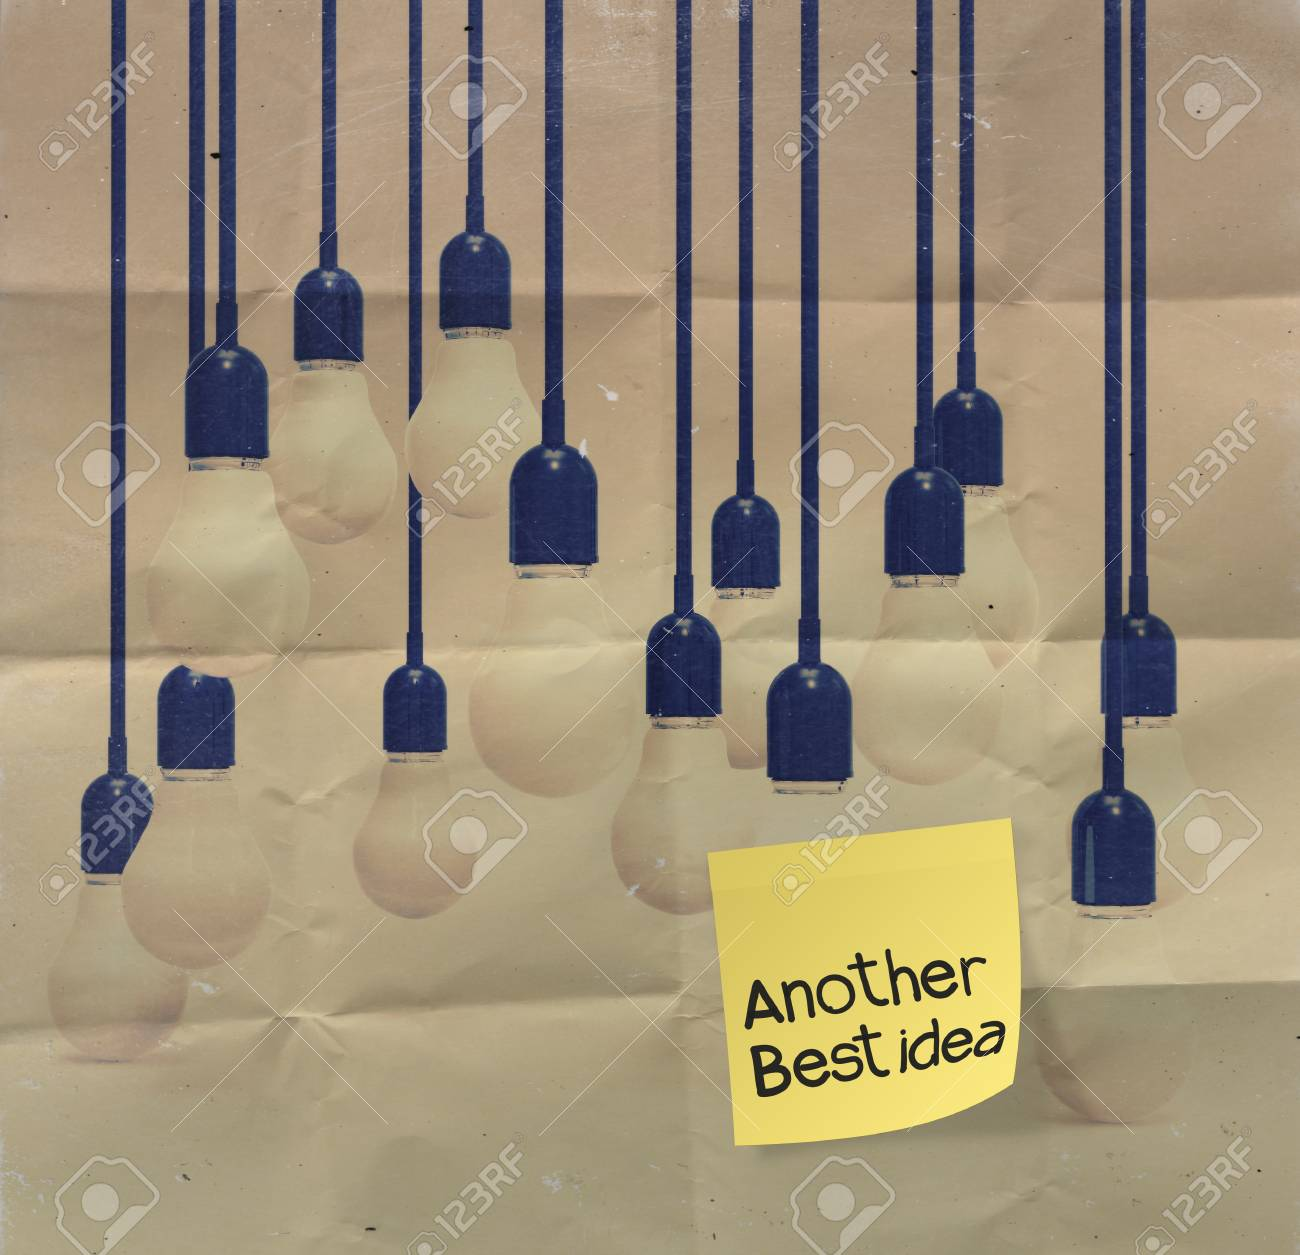 sticky note with another idea light bulb on crumpled paper as creative concept Stock Photo - 23401154